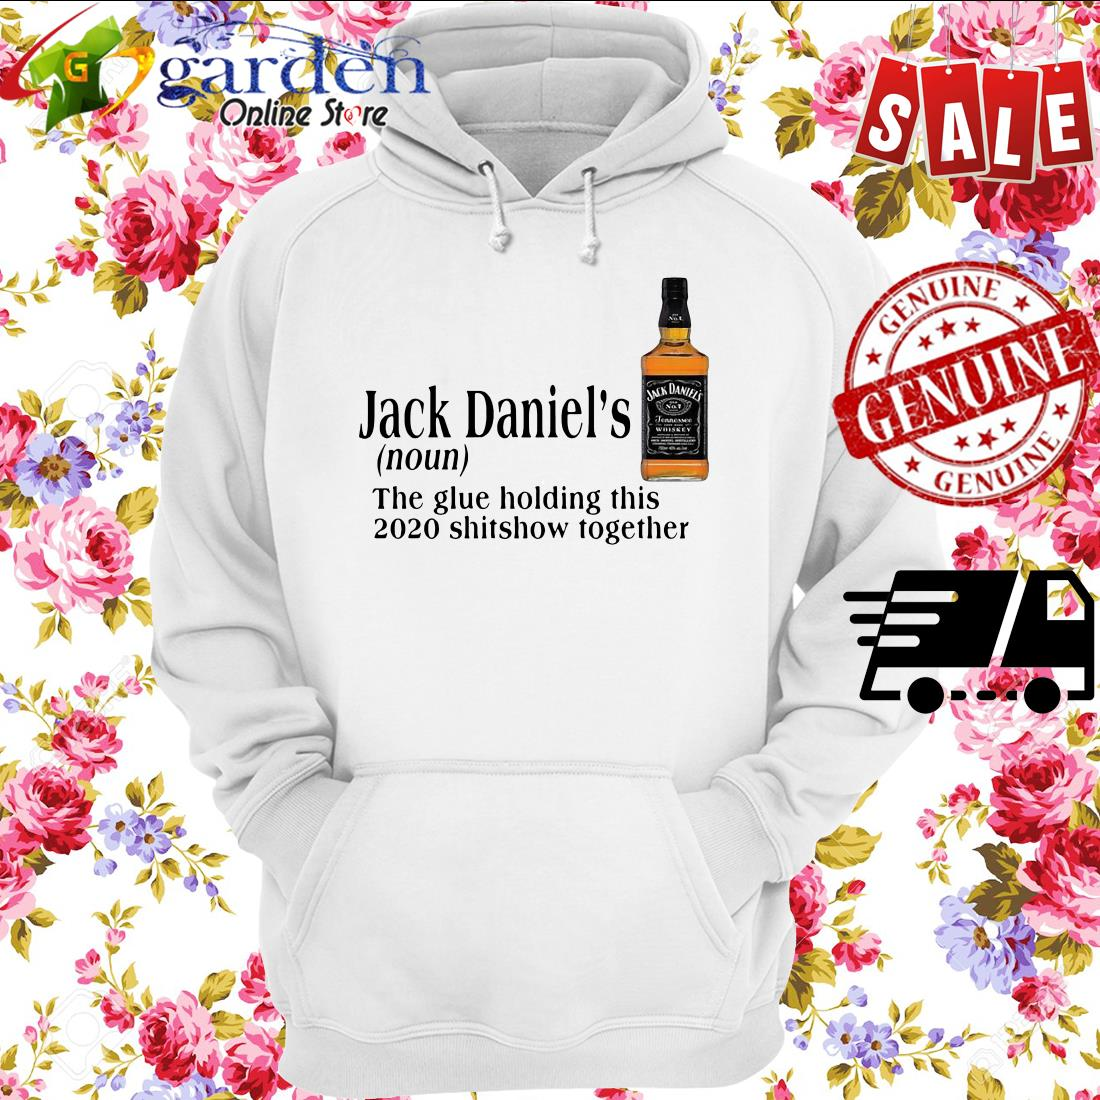 Jack Daniel's The Glue Holding This 2020 Shitshow Together hoodie